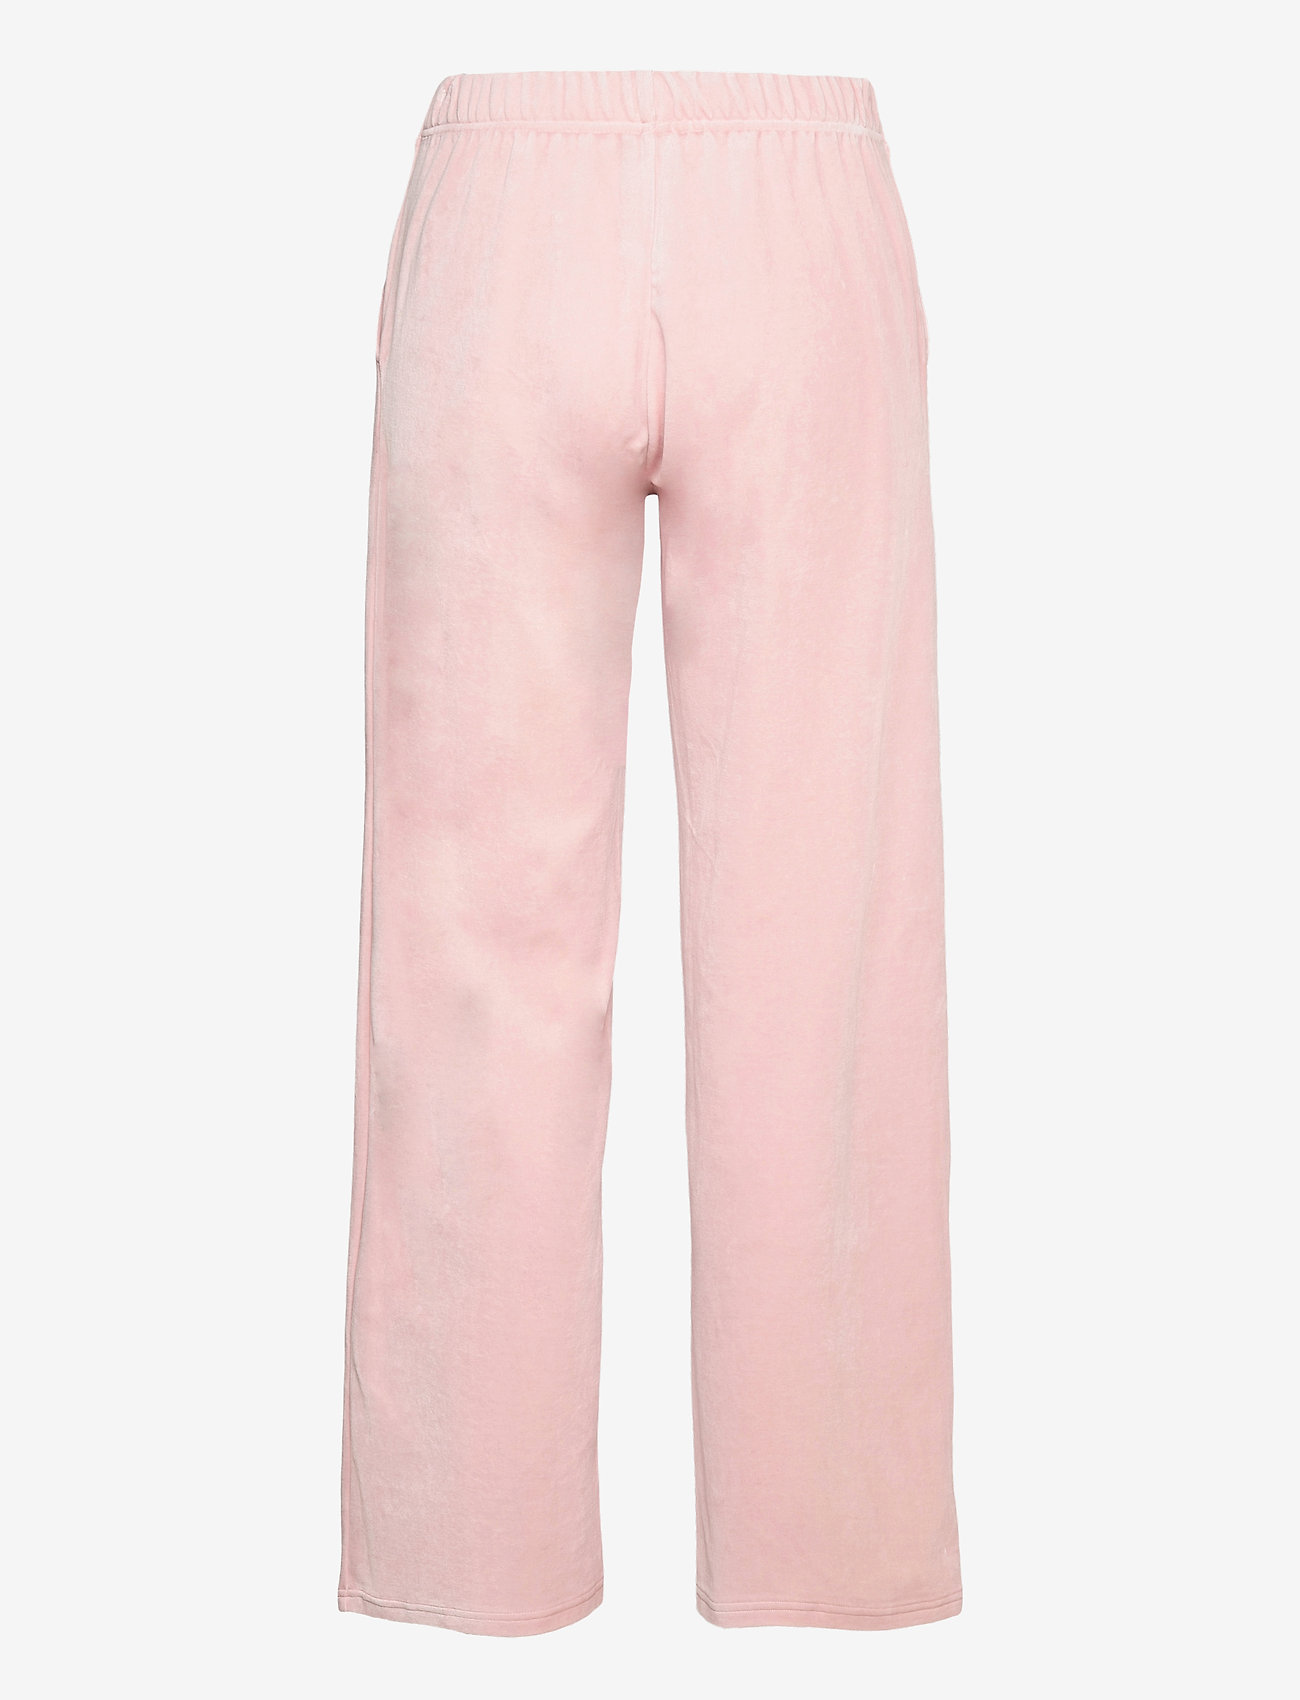 Nanso - Ladies trousers, Vivia - doły - light pink - 1